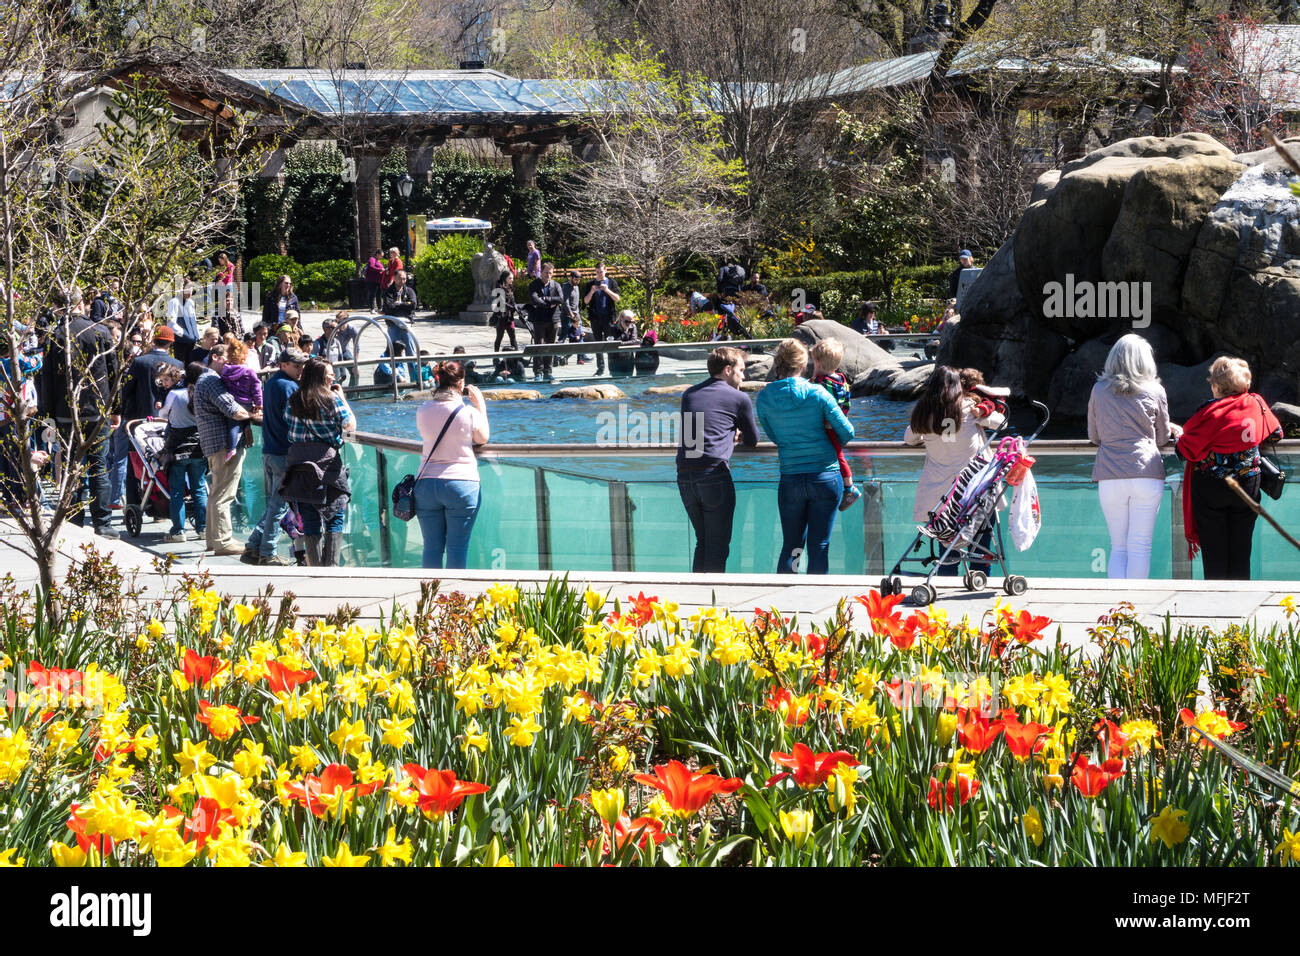 Parents and Children Enjoying the Sea Lion Pool in Central Park Zoo, NYC, USA Stock Photo